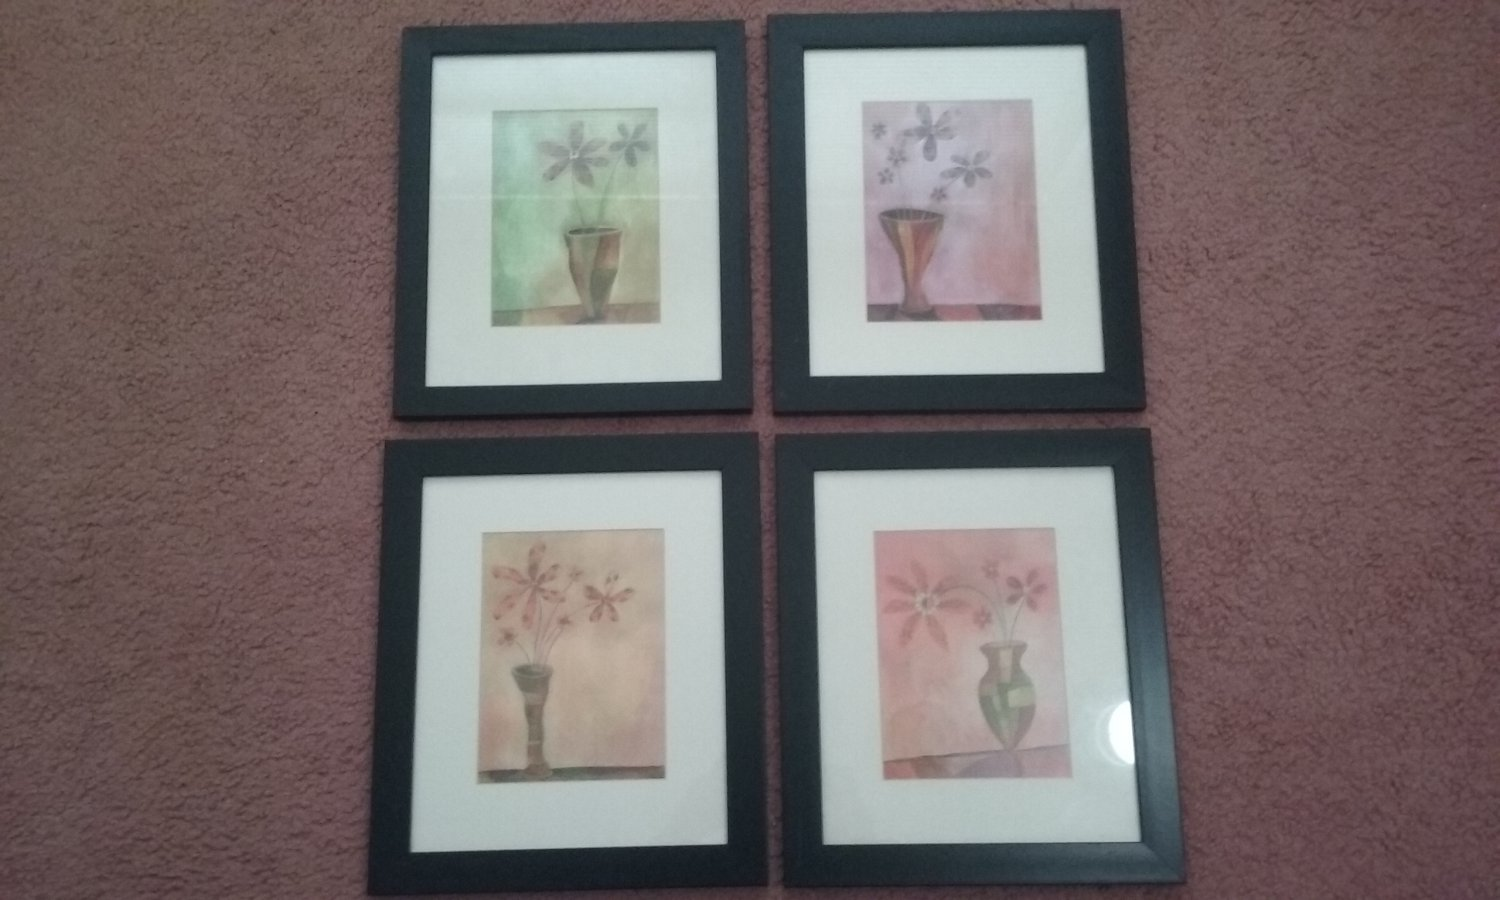 Vintage Wood Framed Pictures -  Set of 4 Floral Design Framed Matted 12x14 Pictures     (1490)